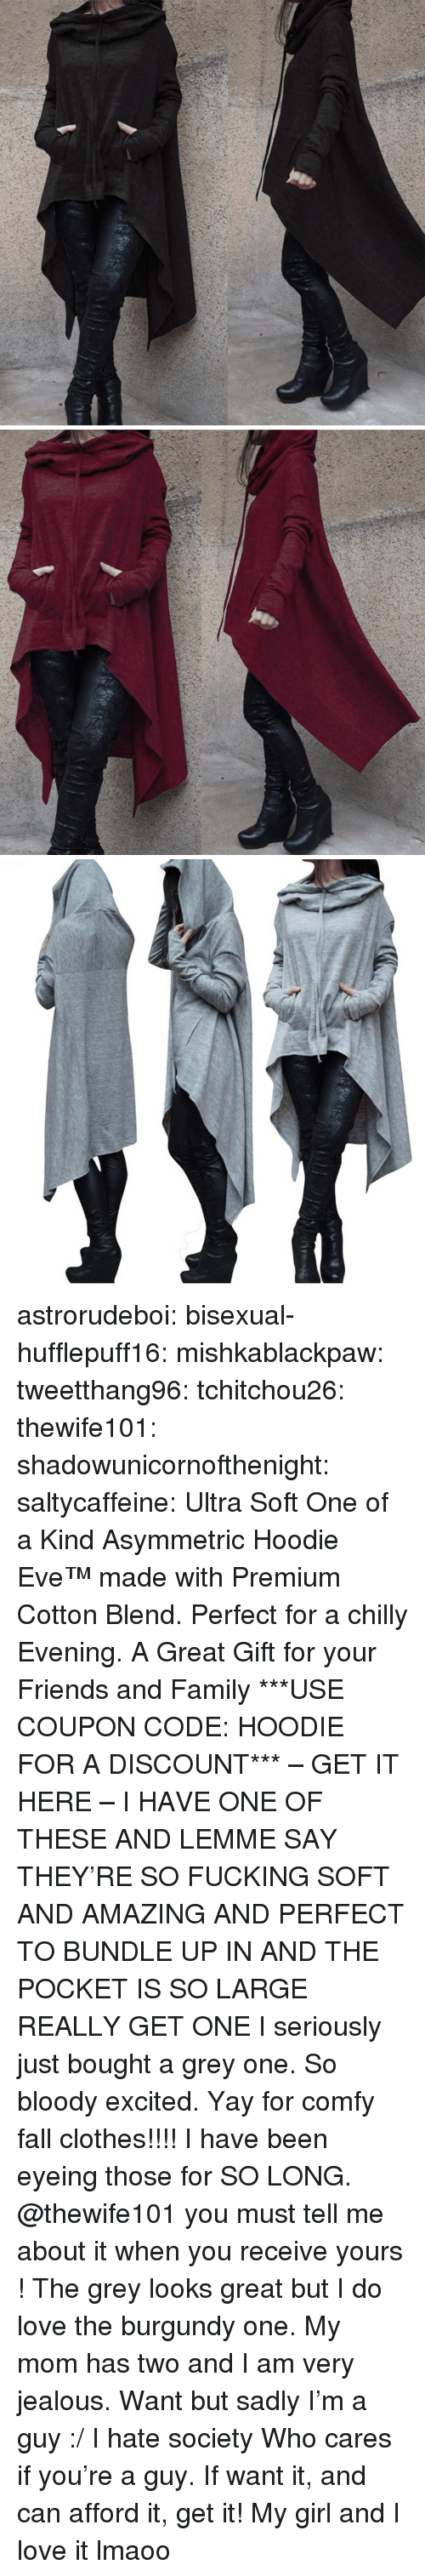 Clothes, Fall, and Family: astrorudeboi: bisexual-hufflepuff16:  mishkablackpaw:   tweetthang96:  tchitchou26:  thewife101:  shadowunicornofthenight:  saltycaffeine:  Ultra Soft One of a Kind Asymmetric Hoodie Eve™ made with Premium Cotton Blend. Perfect for a chilly Evening. A Great Gift for your Friends and Family ***USE COUPON CODE: HOODIE FOR A DISCOUNT*** – GET IT HERE –   I HAVE ONE OF THESE AND LEMME SAY THEY'RE SO FUCKING SOFT AND AMAZING AND PERFECT TO BUNDLE UP IN AND THE POCKET IS SO LARGE REALLY GET ONE   I seriously just bought a grey one. So bloody excited. Yay for comfy fall clothes!!!!   I have been eyeing those for SO LONG. @thewife101 you must tell me about it when you receive yours ! The grey looks great but I do love the burgundy one.   My mom has two and I am very jealous.   Want but sadly I'm a guy :/ I hate society   Who cares if you're a guy. If want it, and can afford it, get it!   My girl and I love it lmaoo